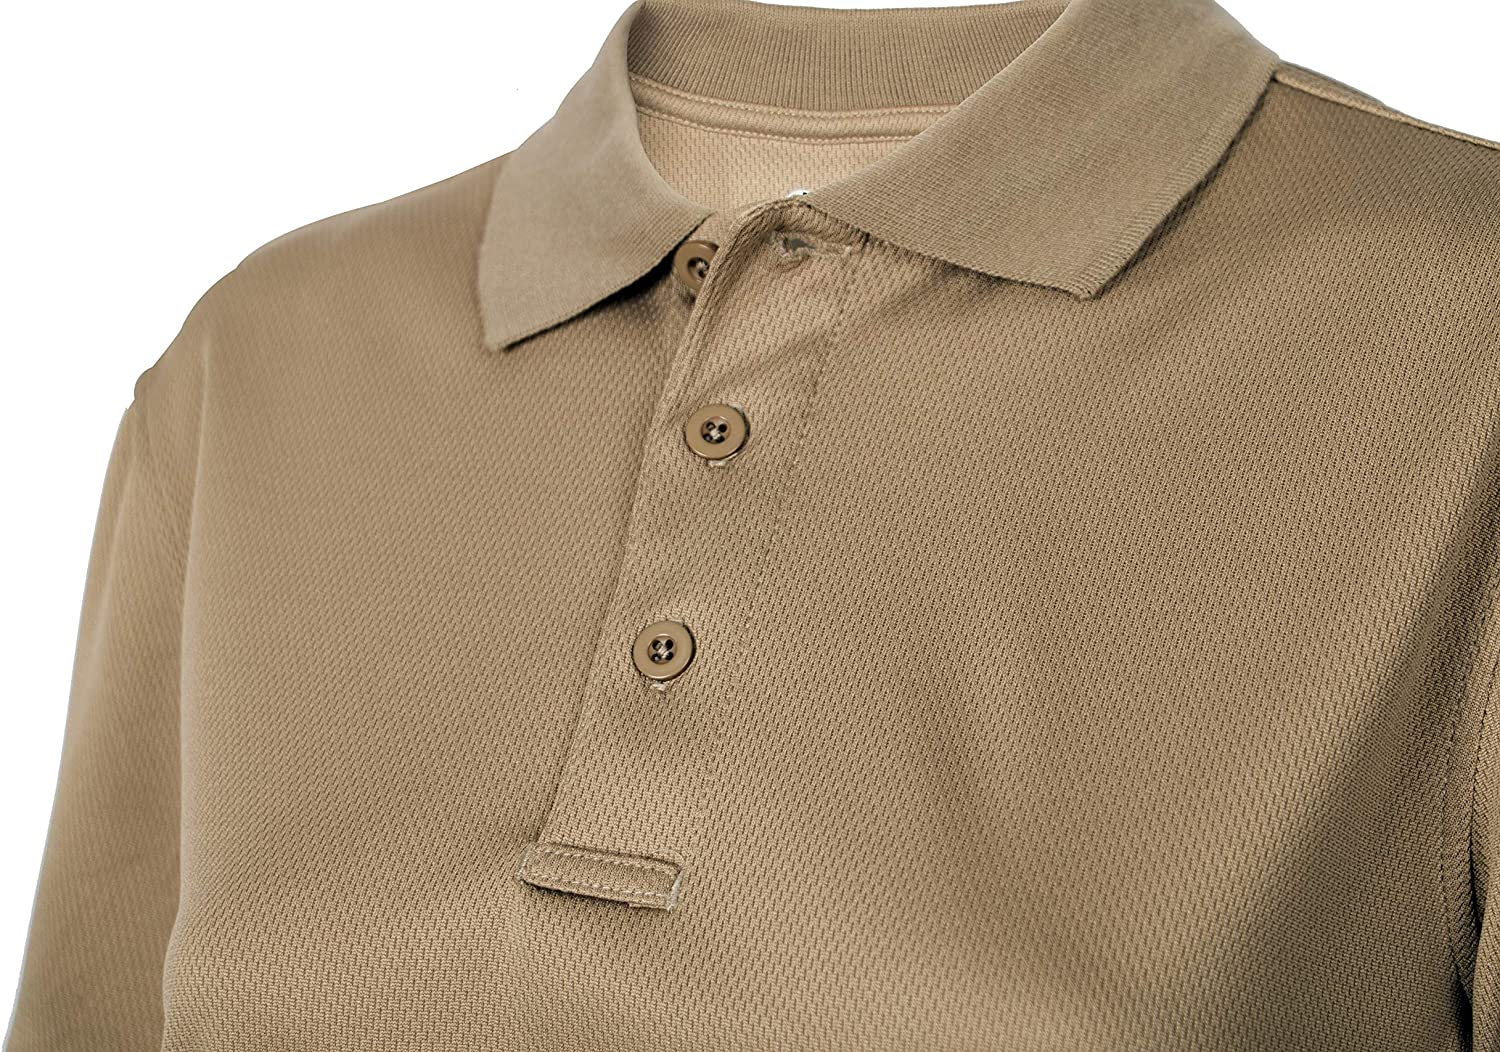 LA Police Gear Womens Anti Wrinkle Tactical Recon Jersey Polo Shirt-Charcoal-M